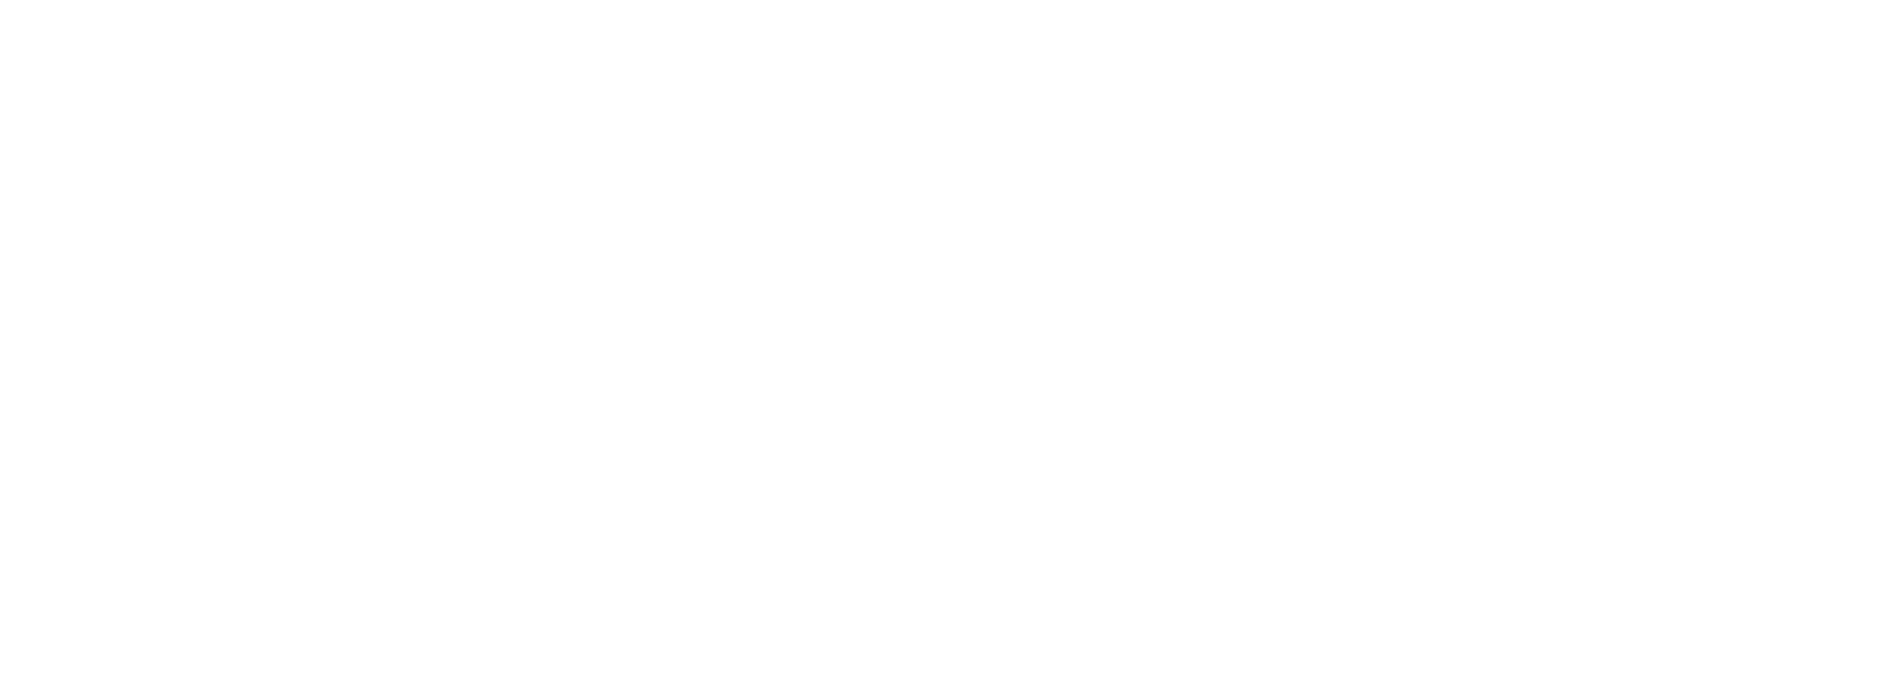 Celebrate Christmas at The Village Christian Church in Minooka, IL